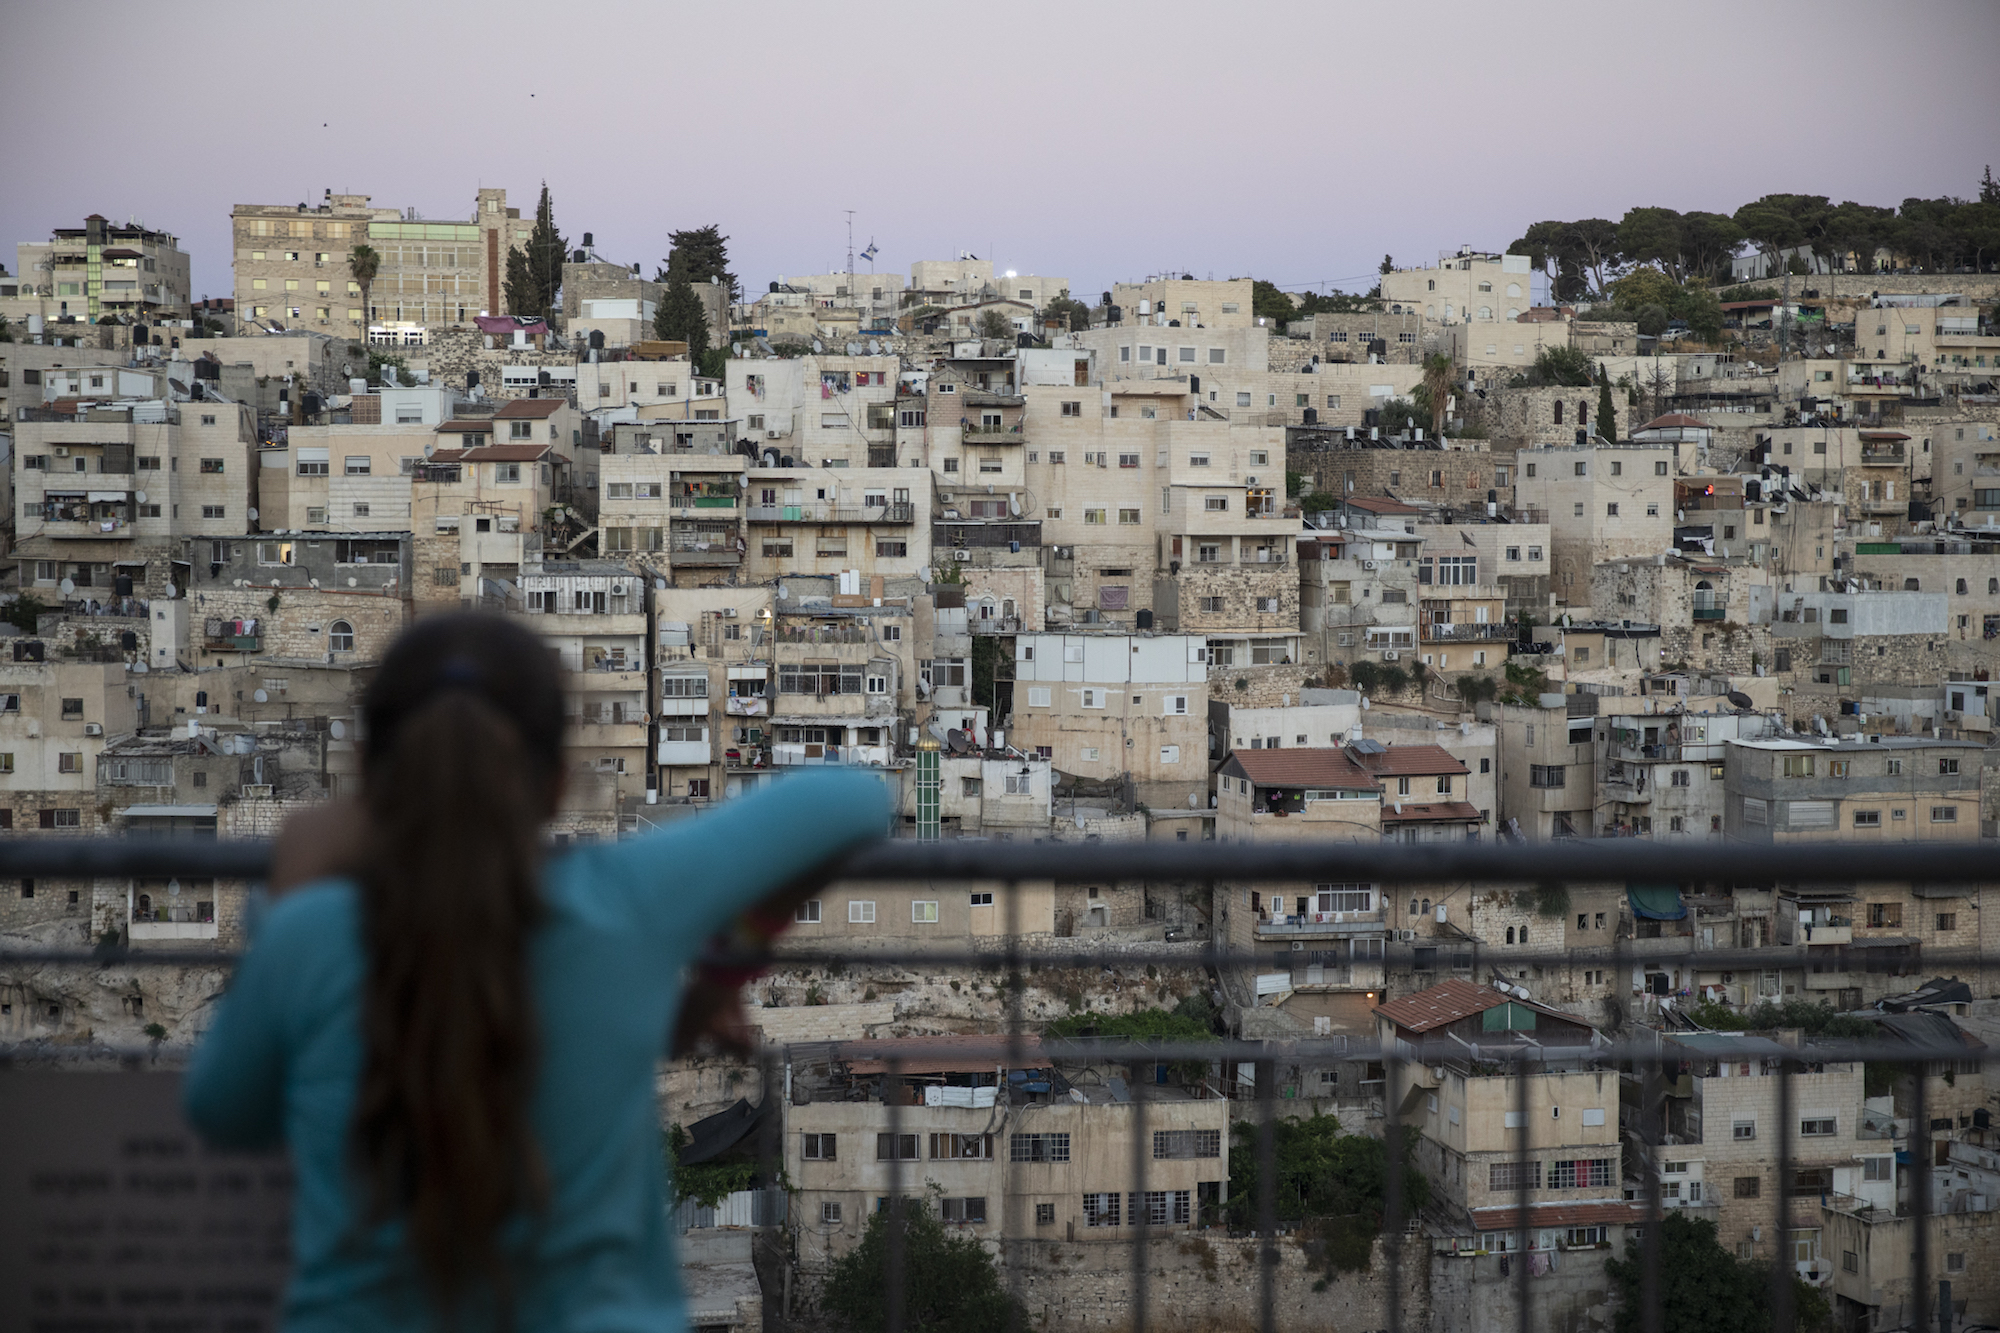 A young Jewish girl looks out from City of David National Park at the Palestinian neighborhood of Silwan, East Jerusalem, July 14, 2019. (Hadas Parush/Flash90)